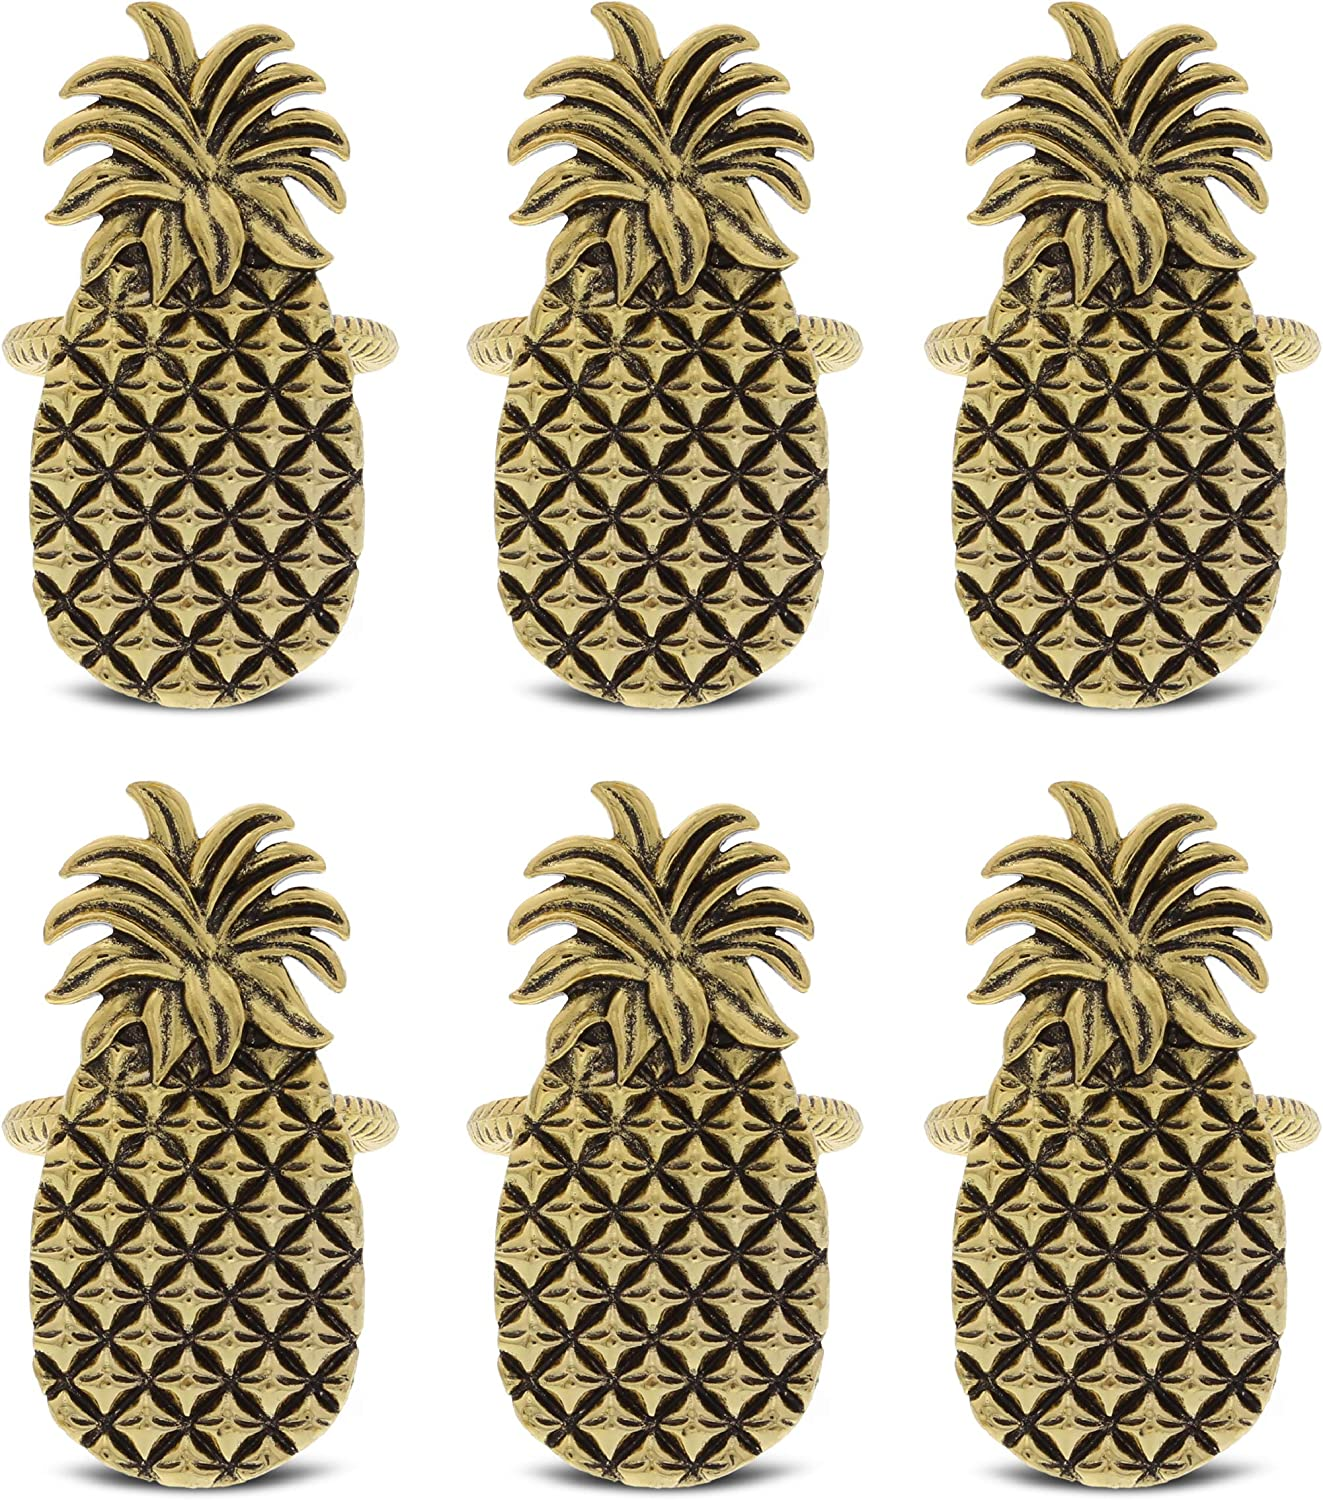 KitchaBon Gold Napkin Rings Set of 6, Table Setting Centerpiece Decor Napkins Ring Holders, Napkin Ring Packs for Family Holiday Dinner, Fancy Banquet & Wedding Decorations for Reception- Pineapple